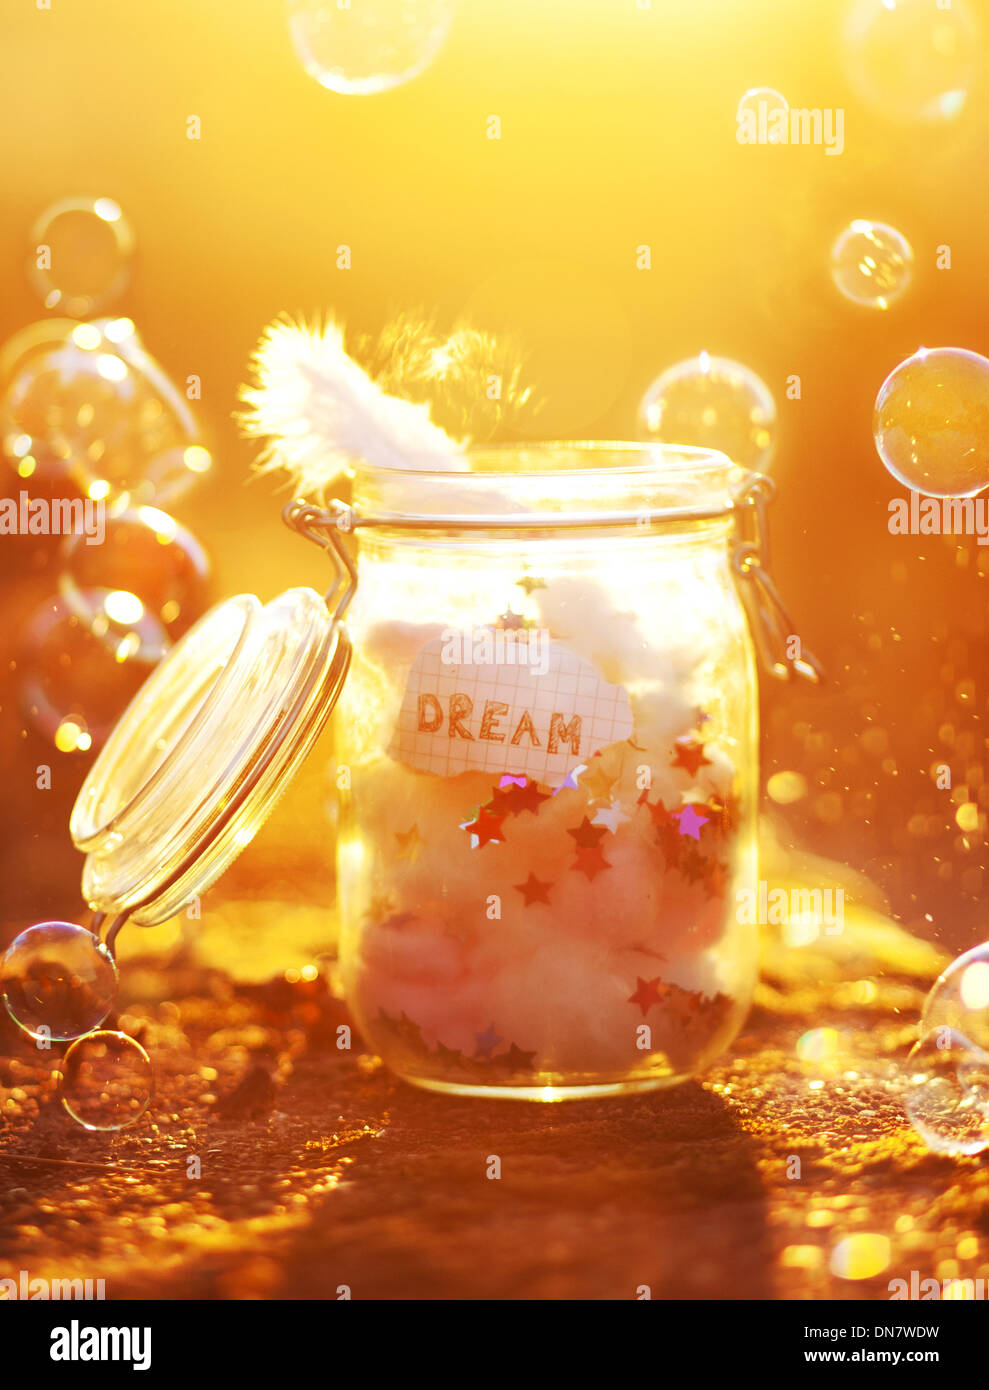 Preserving jar with paper, feathers and bubbles in backlight - Stock Image